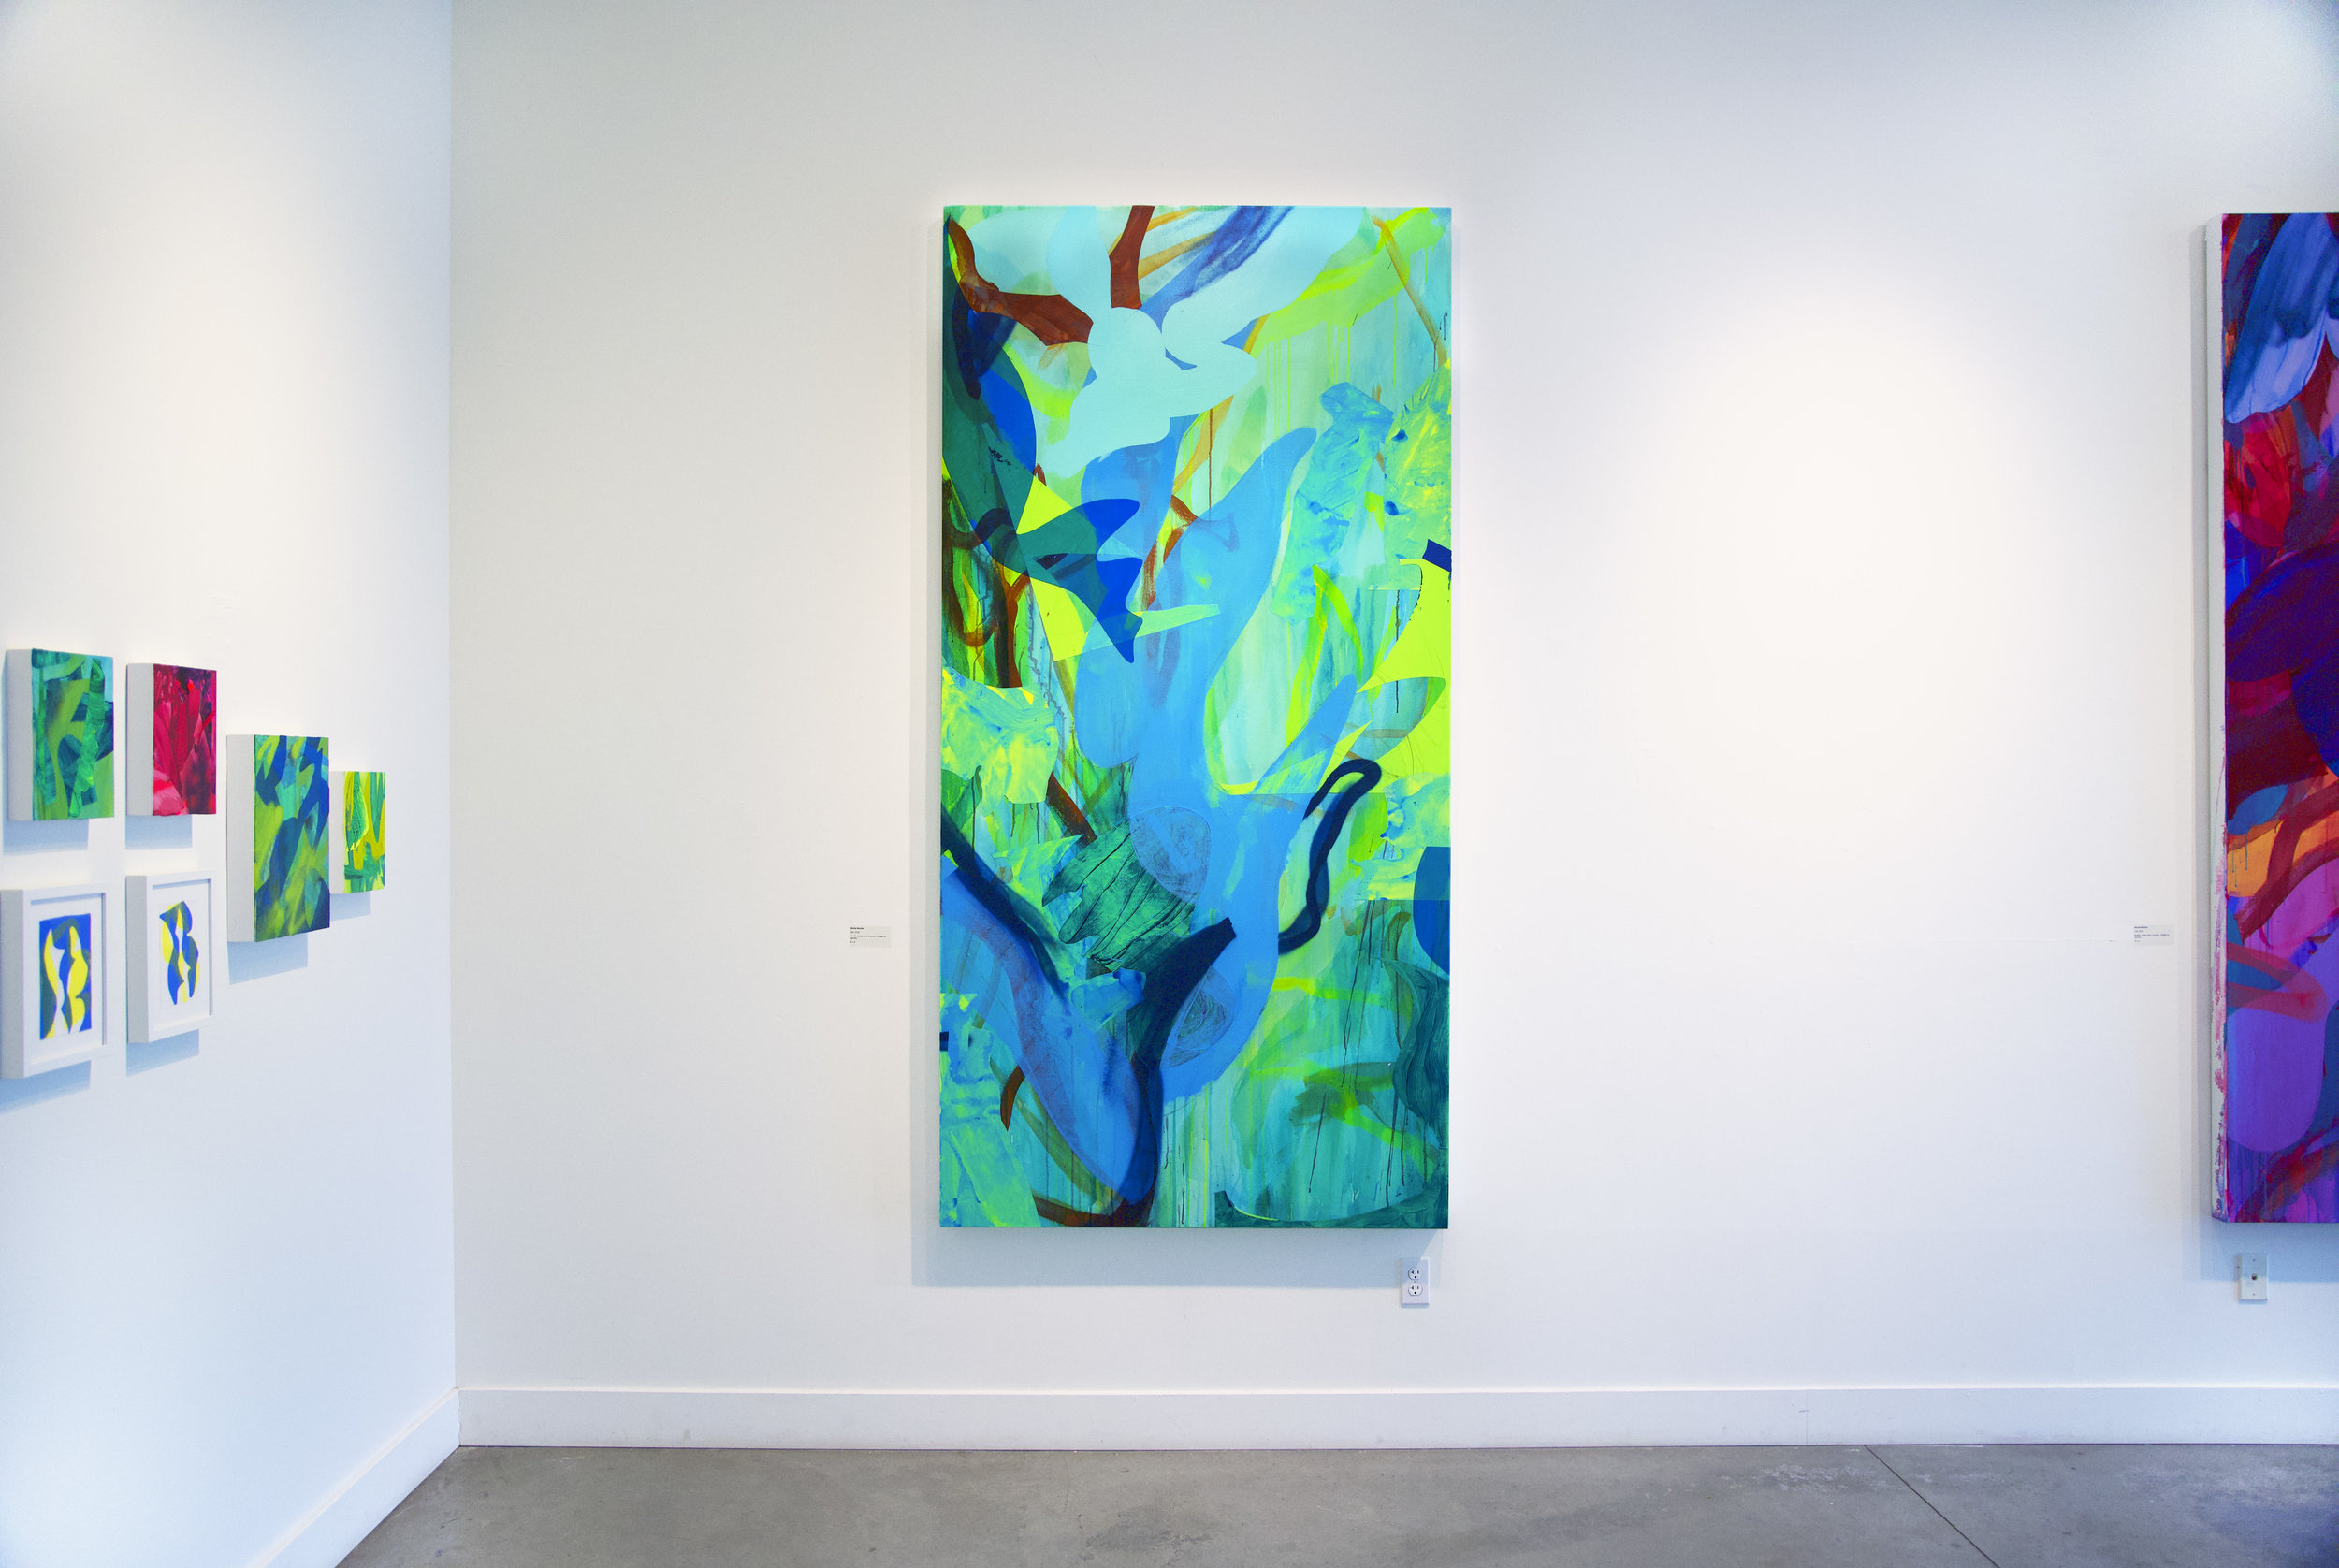 Slip  (installation view), 96 x 48 in., Acrylic, spray paint, dura-lar, collage on canvas, 2018